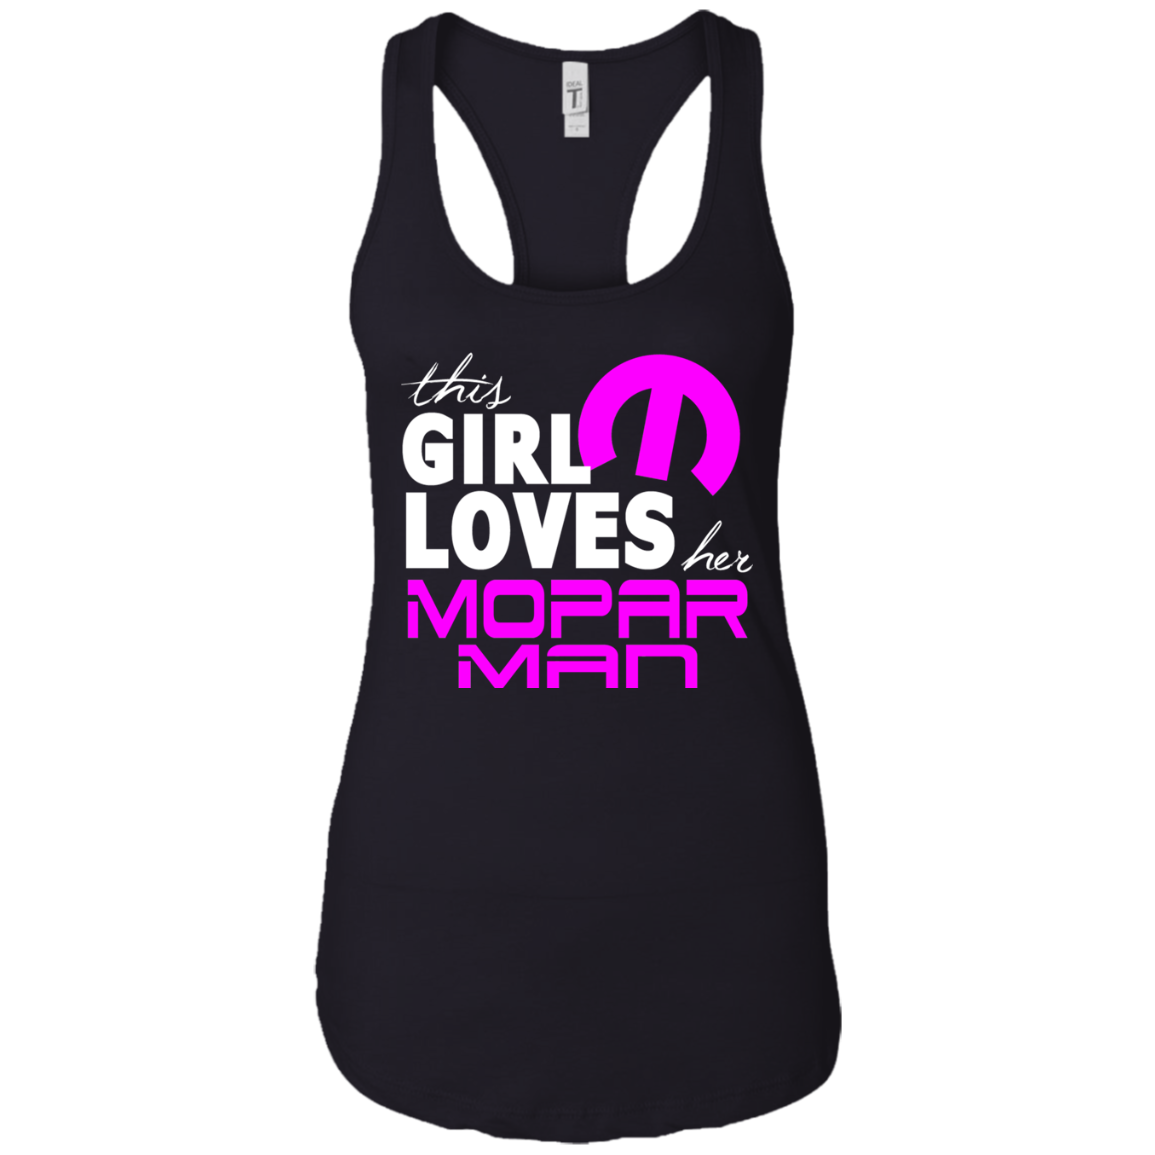 This Lady Loves Her Mopar Man Tank Top, T-Shirts - MotorClub Clothes